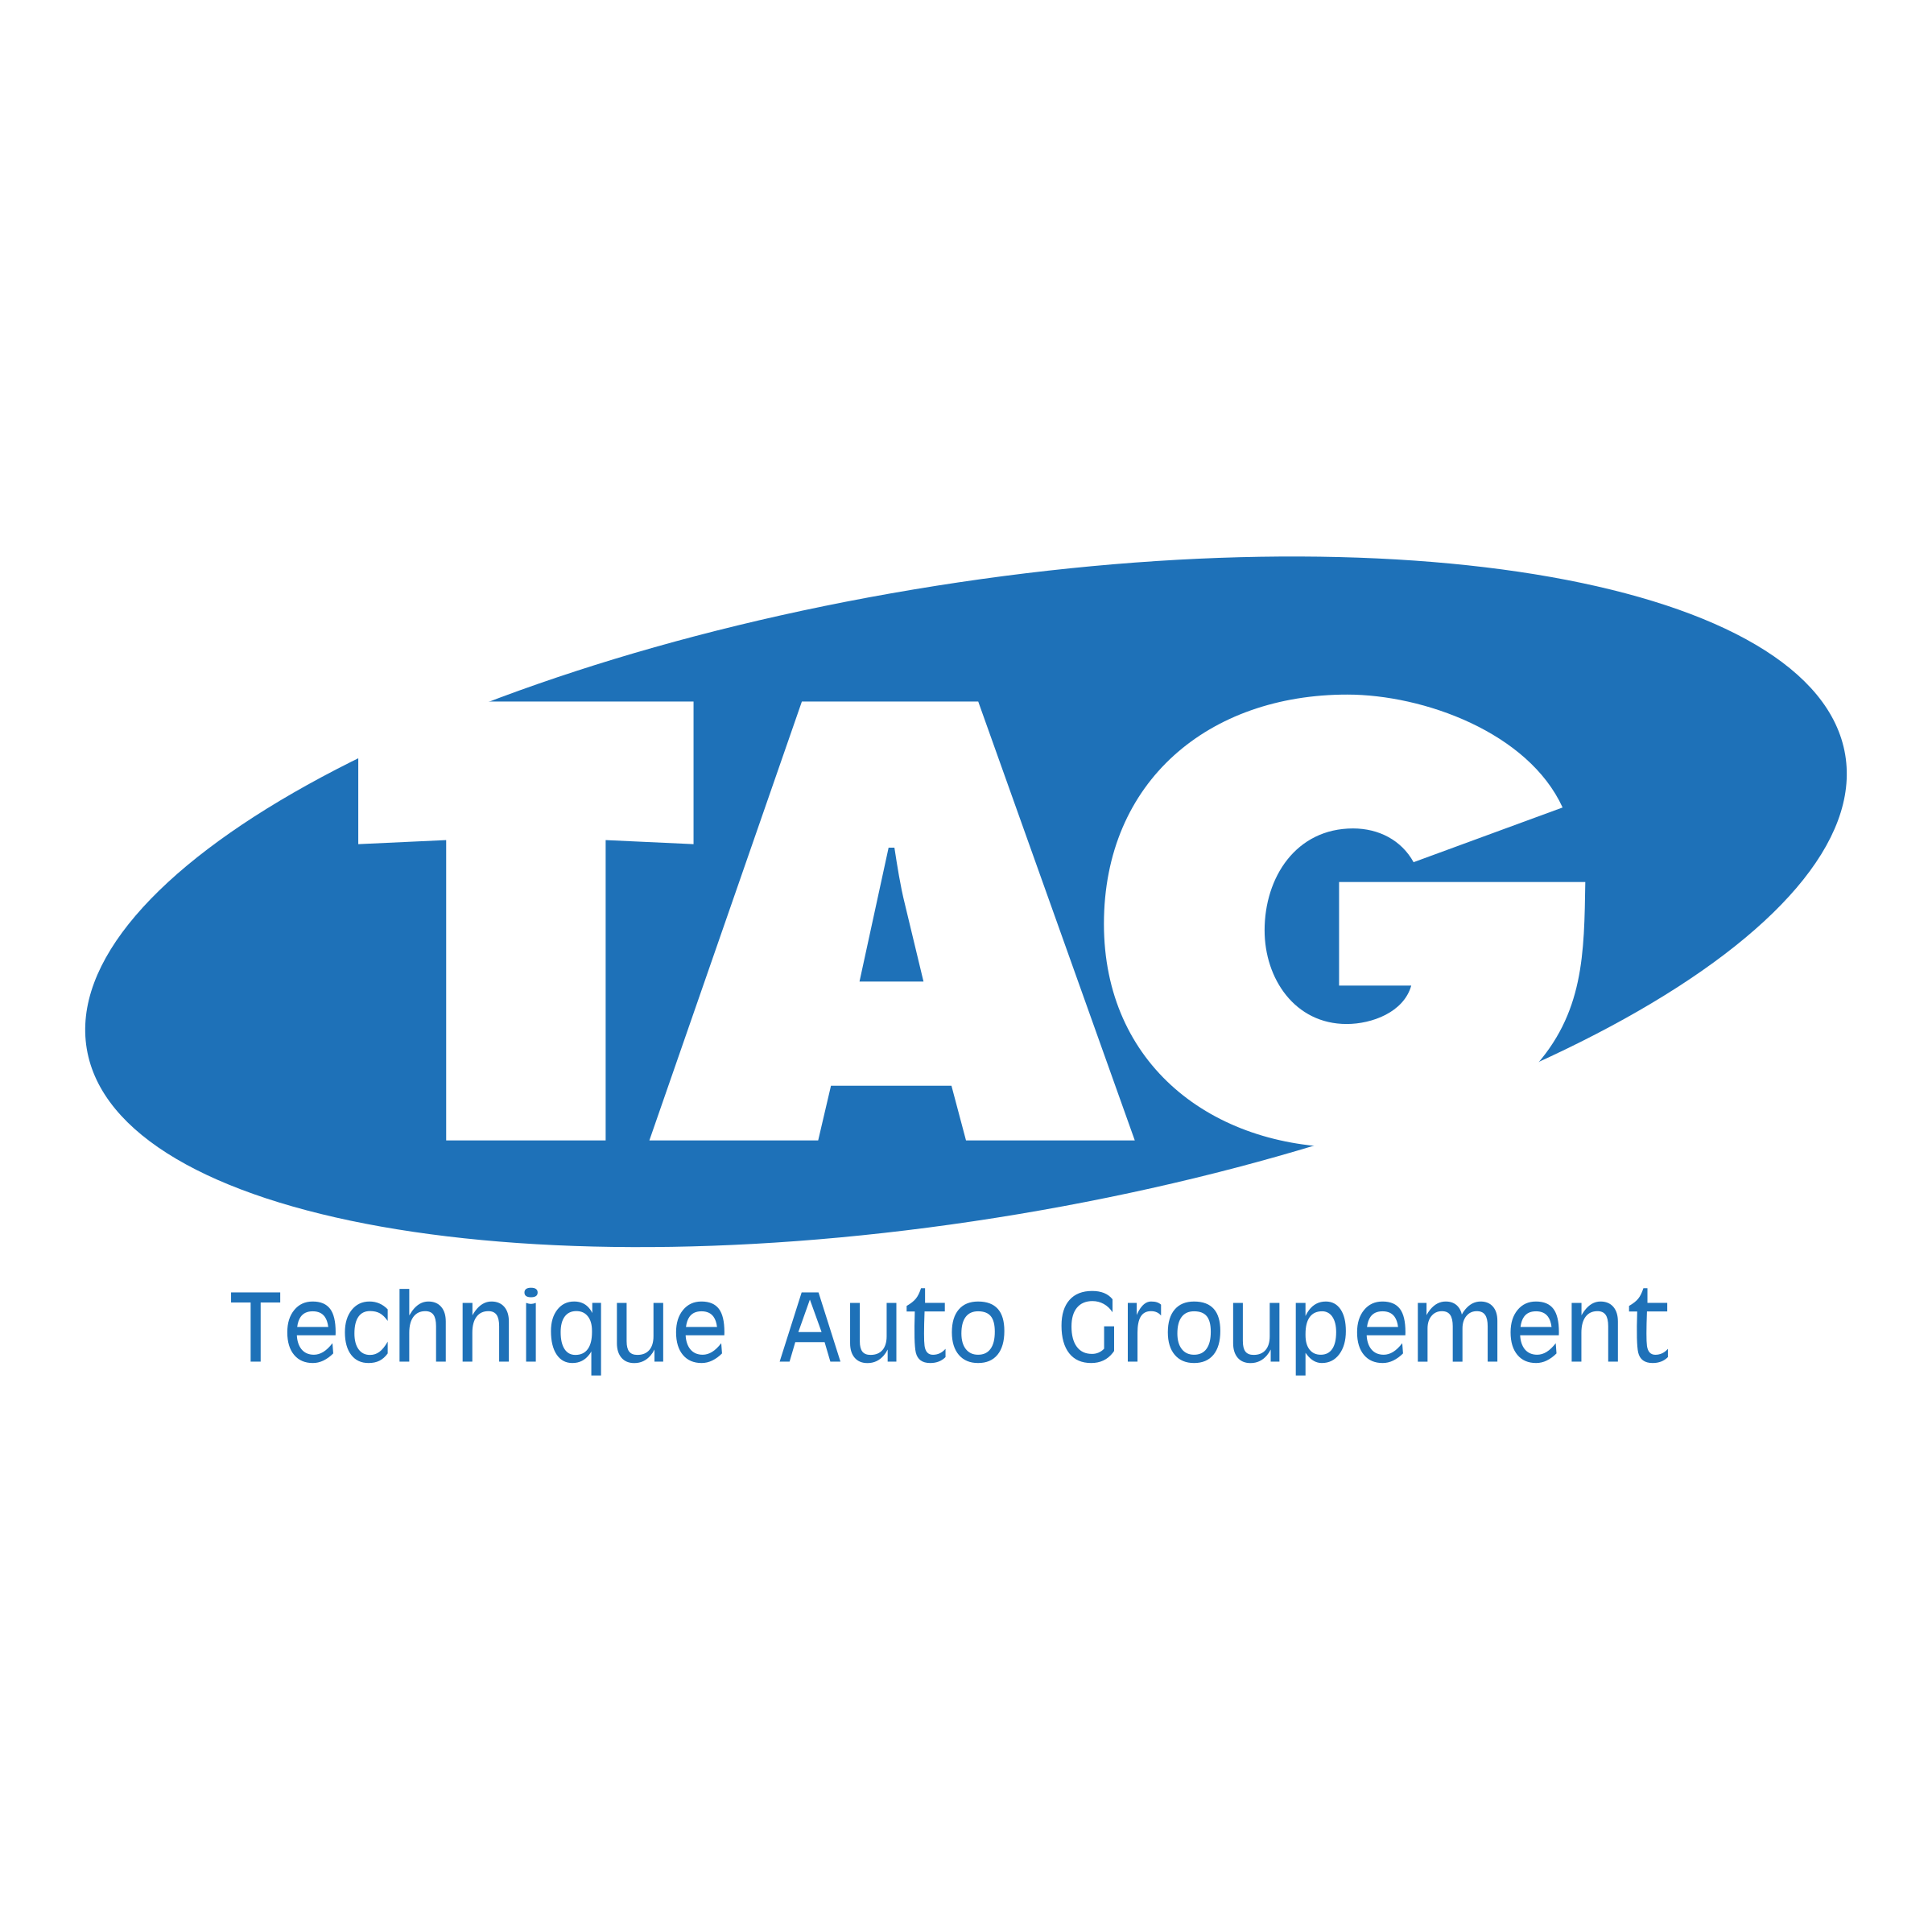 TAG Logo PNG Transparent & SVG Vector - Freebie Supply